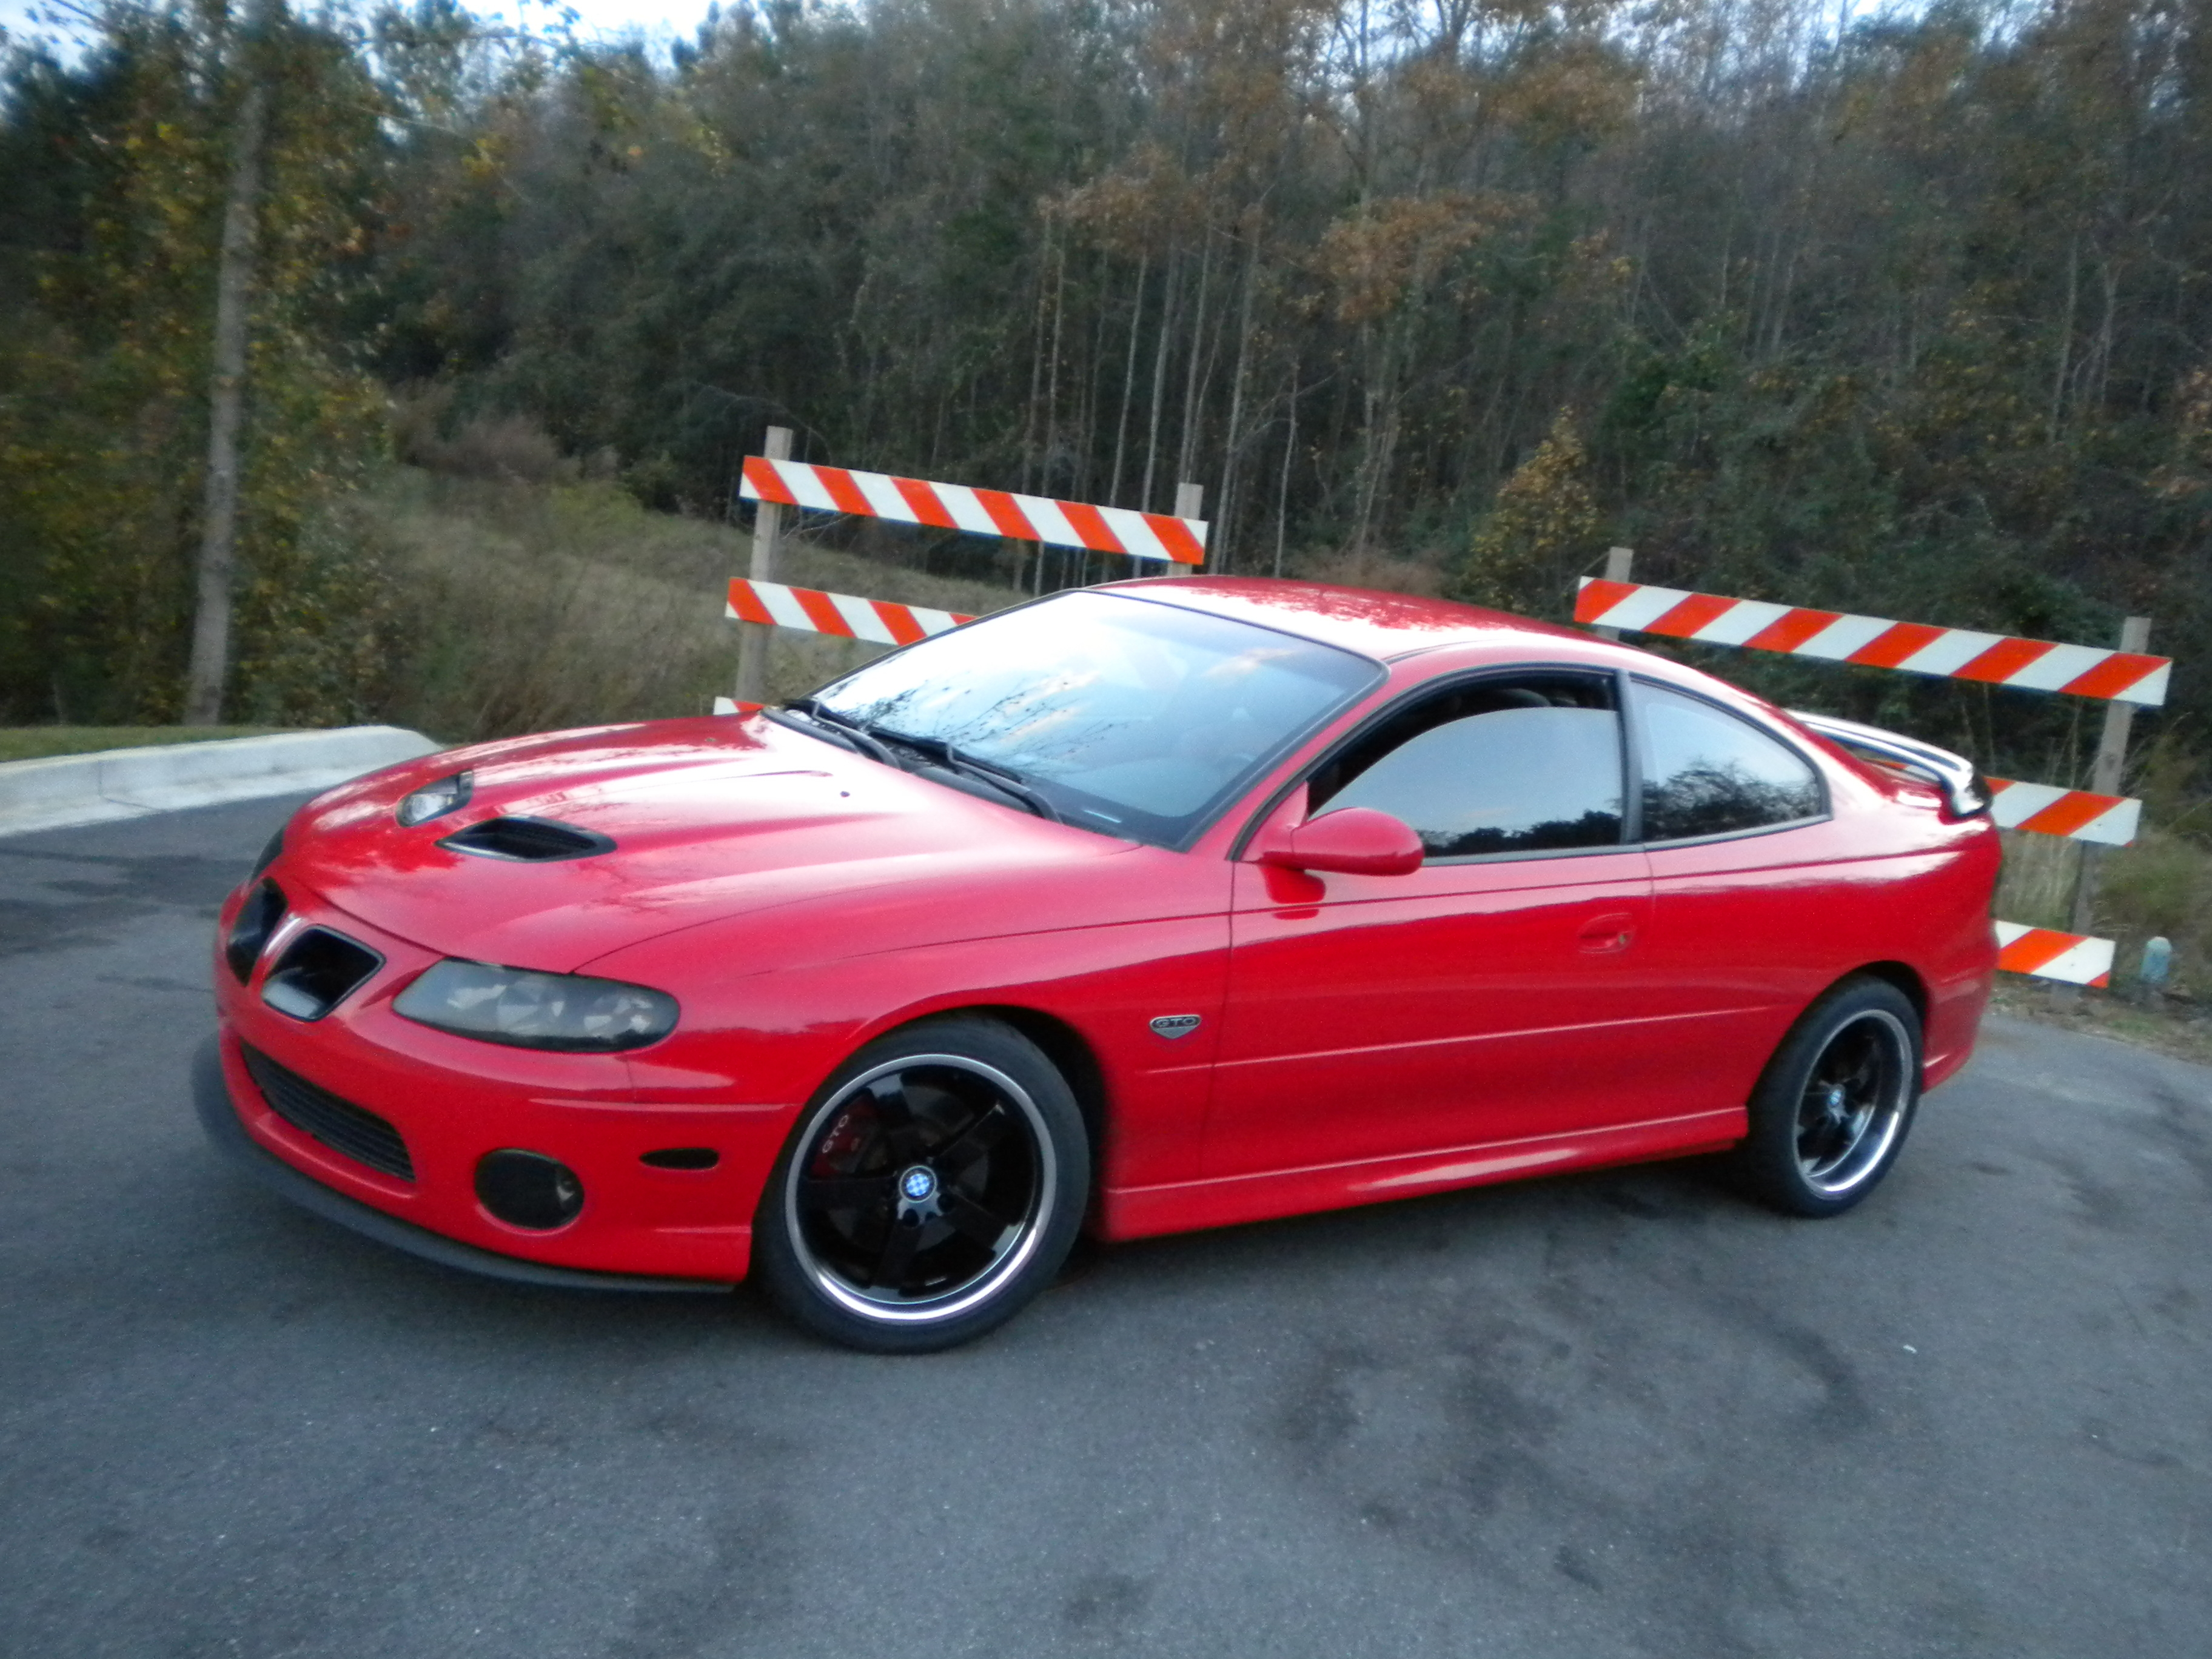 Red Wing Chevrolet >> sixohgto 2006 Pontiac GTO Specs, Photos, Modification Info at CarDomain